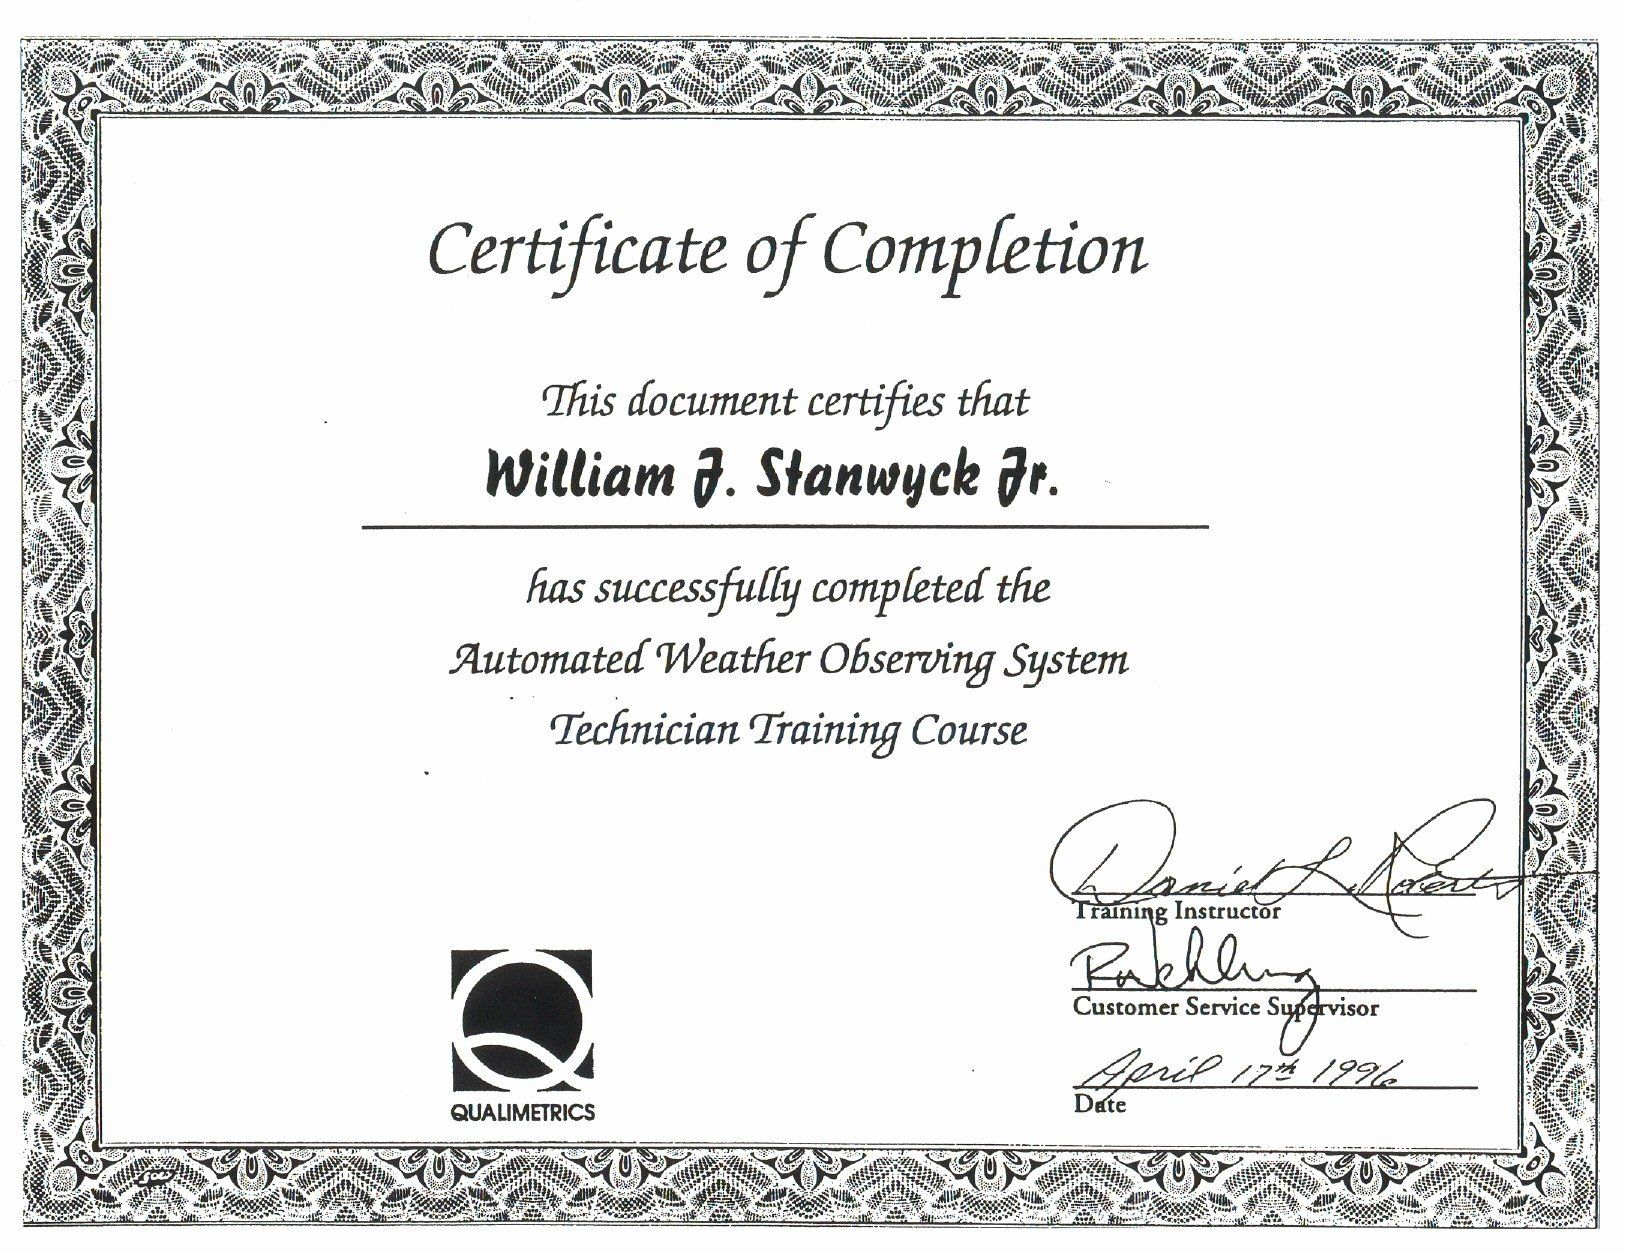 Certificate Of Completion Template Pdf Unique 024 Free Certificate Template Certificate Of Completion Template Certificate Templates Free Certificate Templates Anger management certificate of completion template